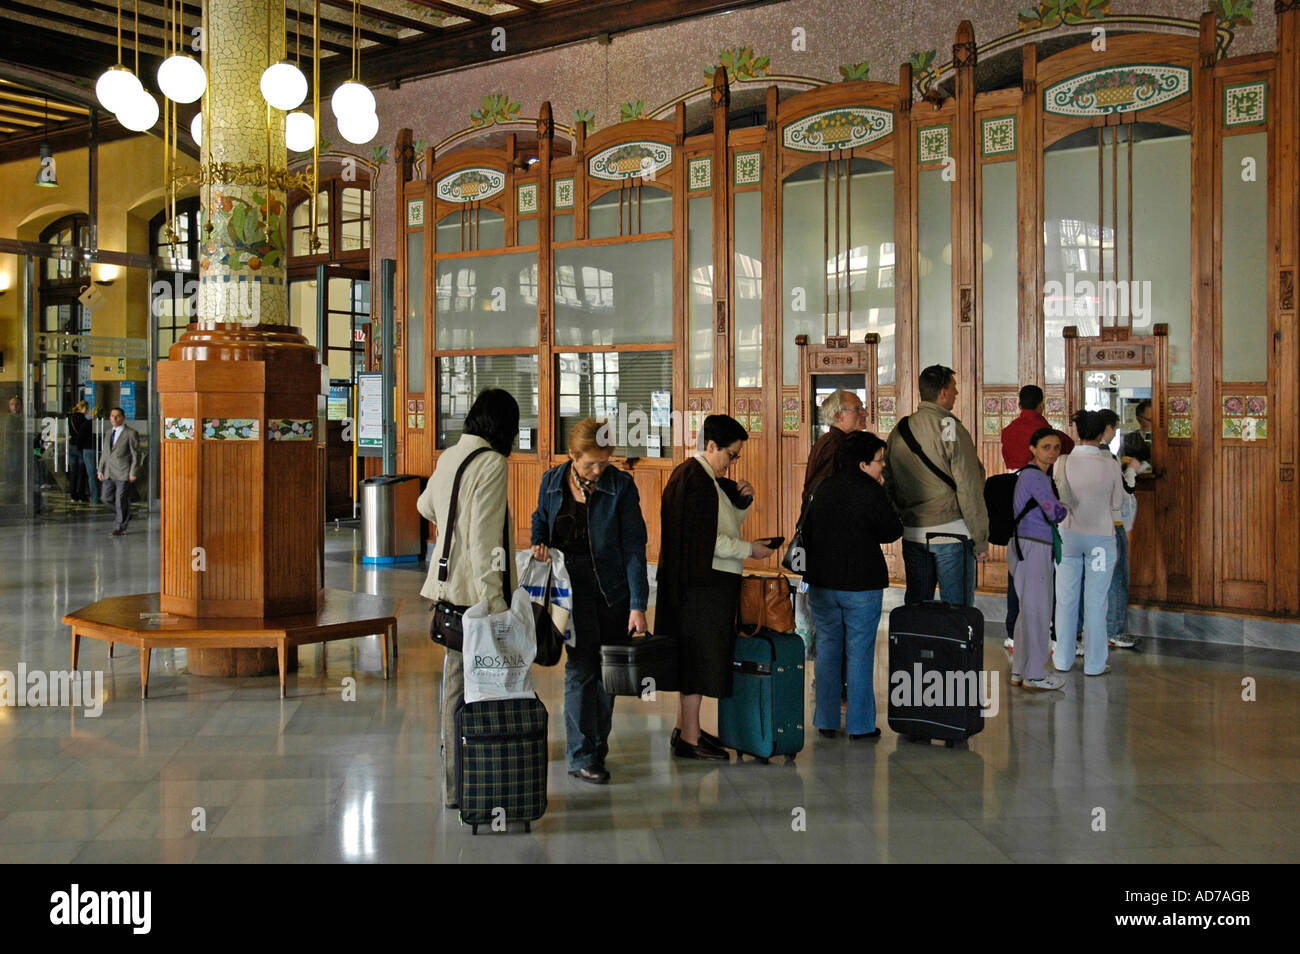 Travellers queueing in the lobby in front of ticket counters, main station, Valencia, Spain Stock Photo